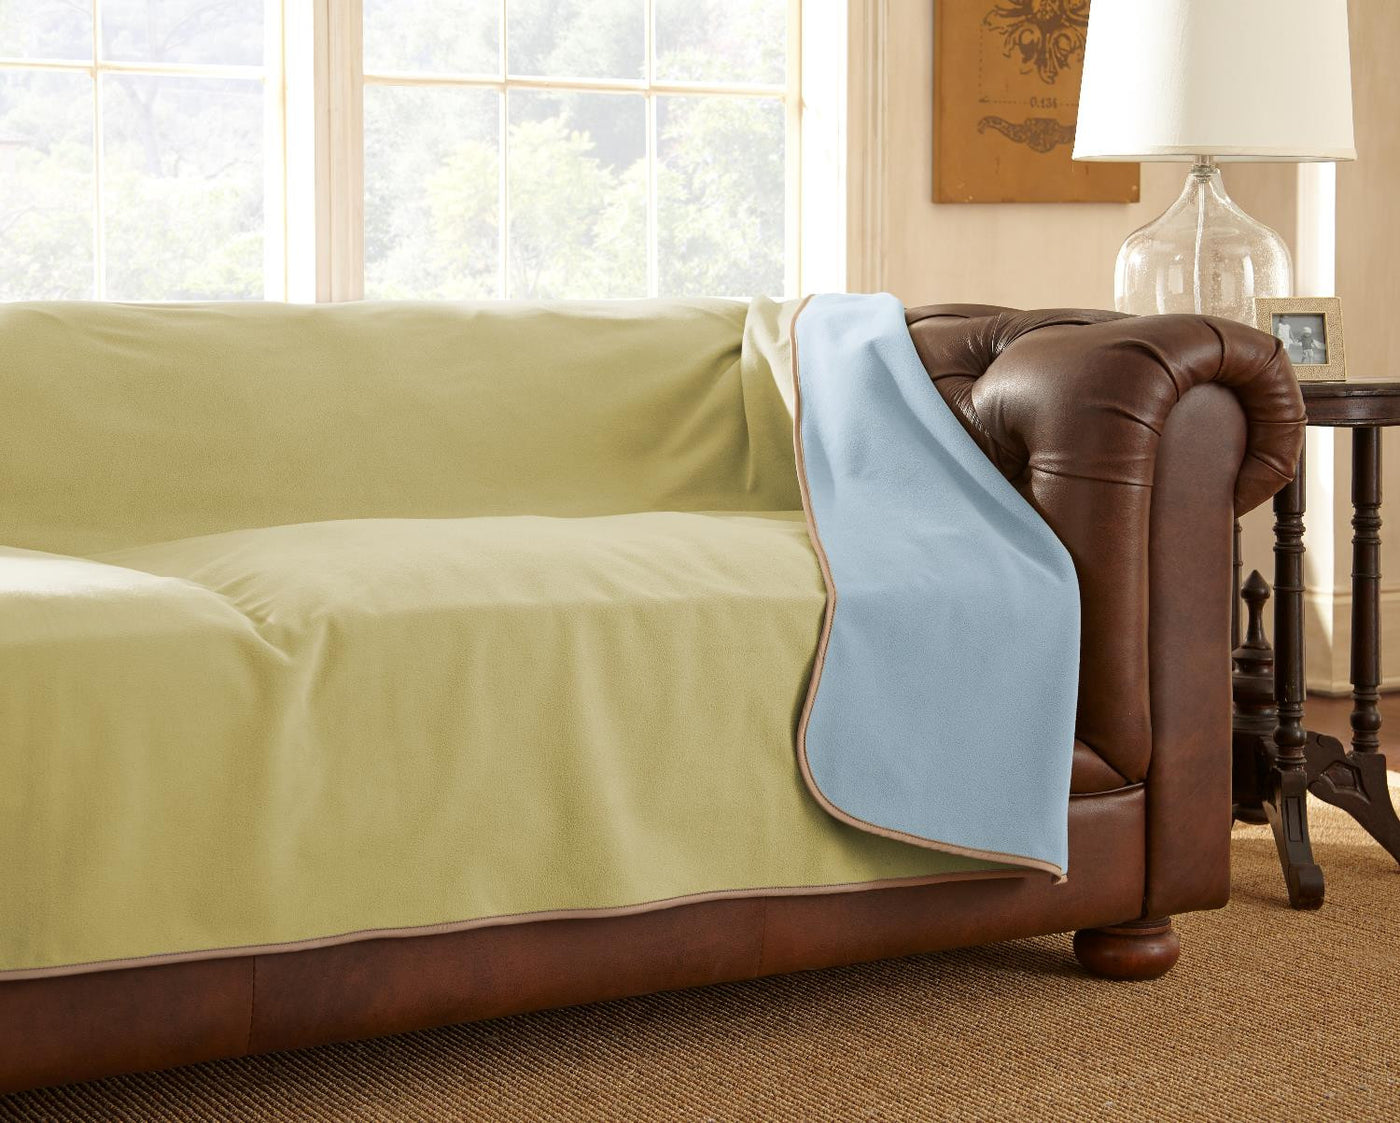 Bamboo skyblue waterproof fleece Mambe Furniture Cover